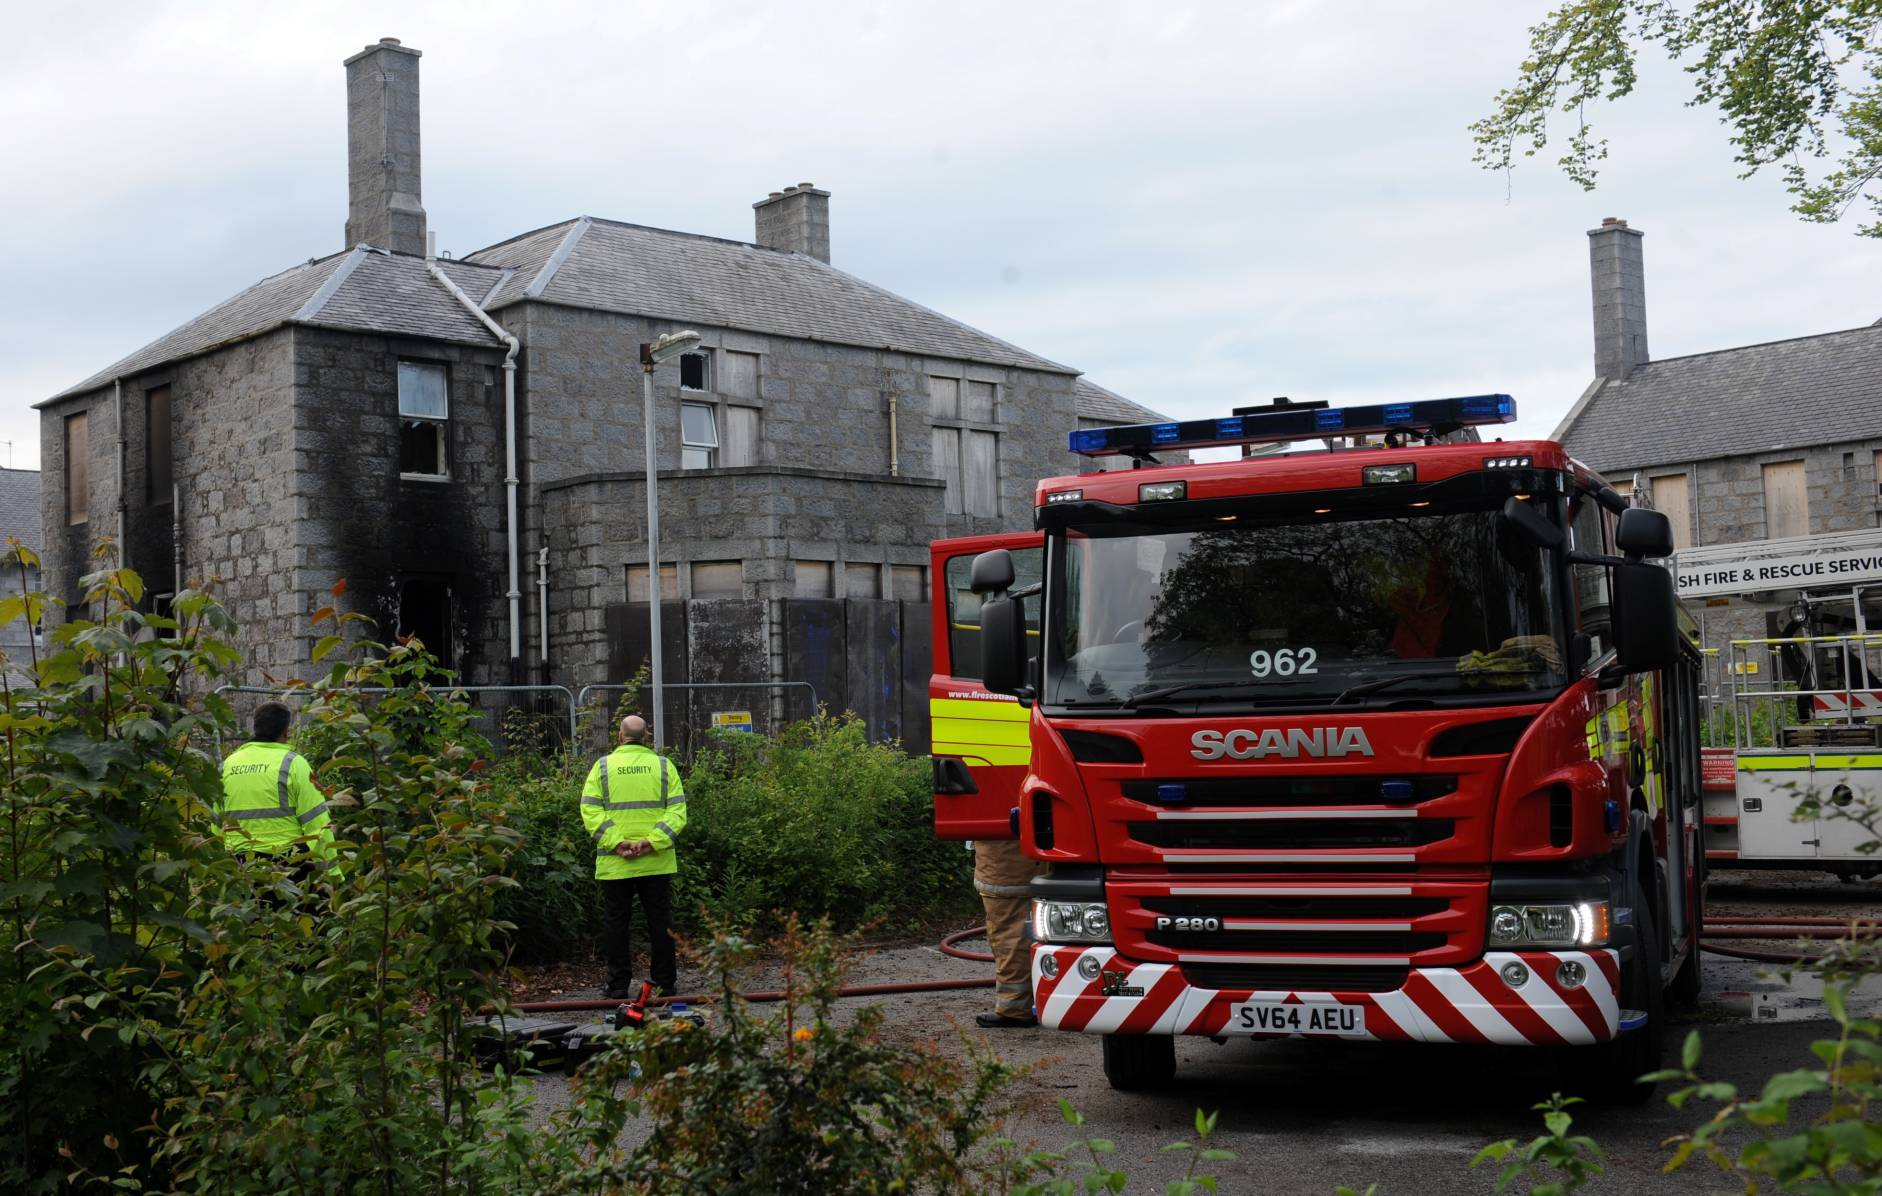 Firefighters at the scene of the blaze in an old section of Cornhill Hospital.